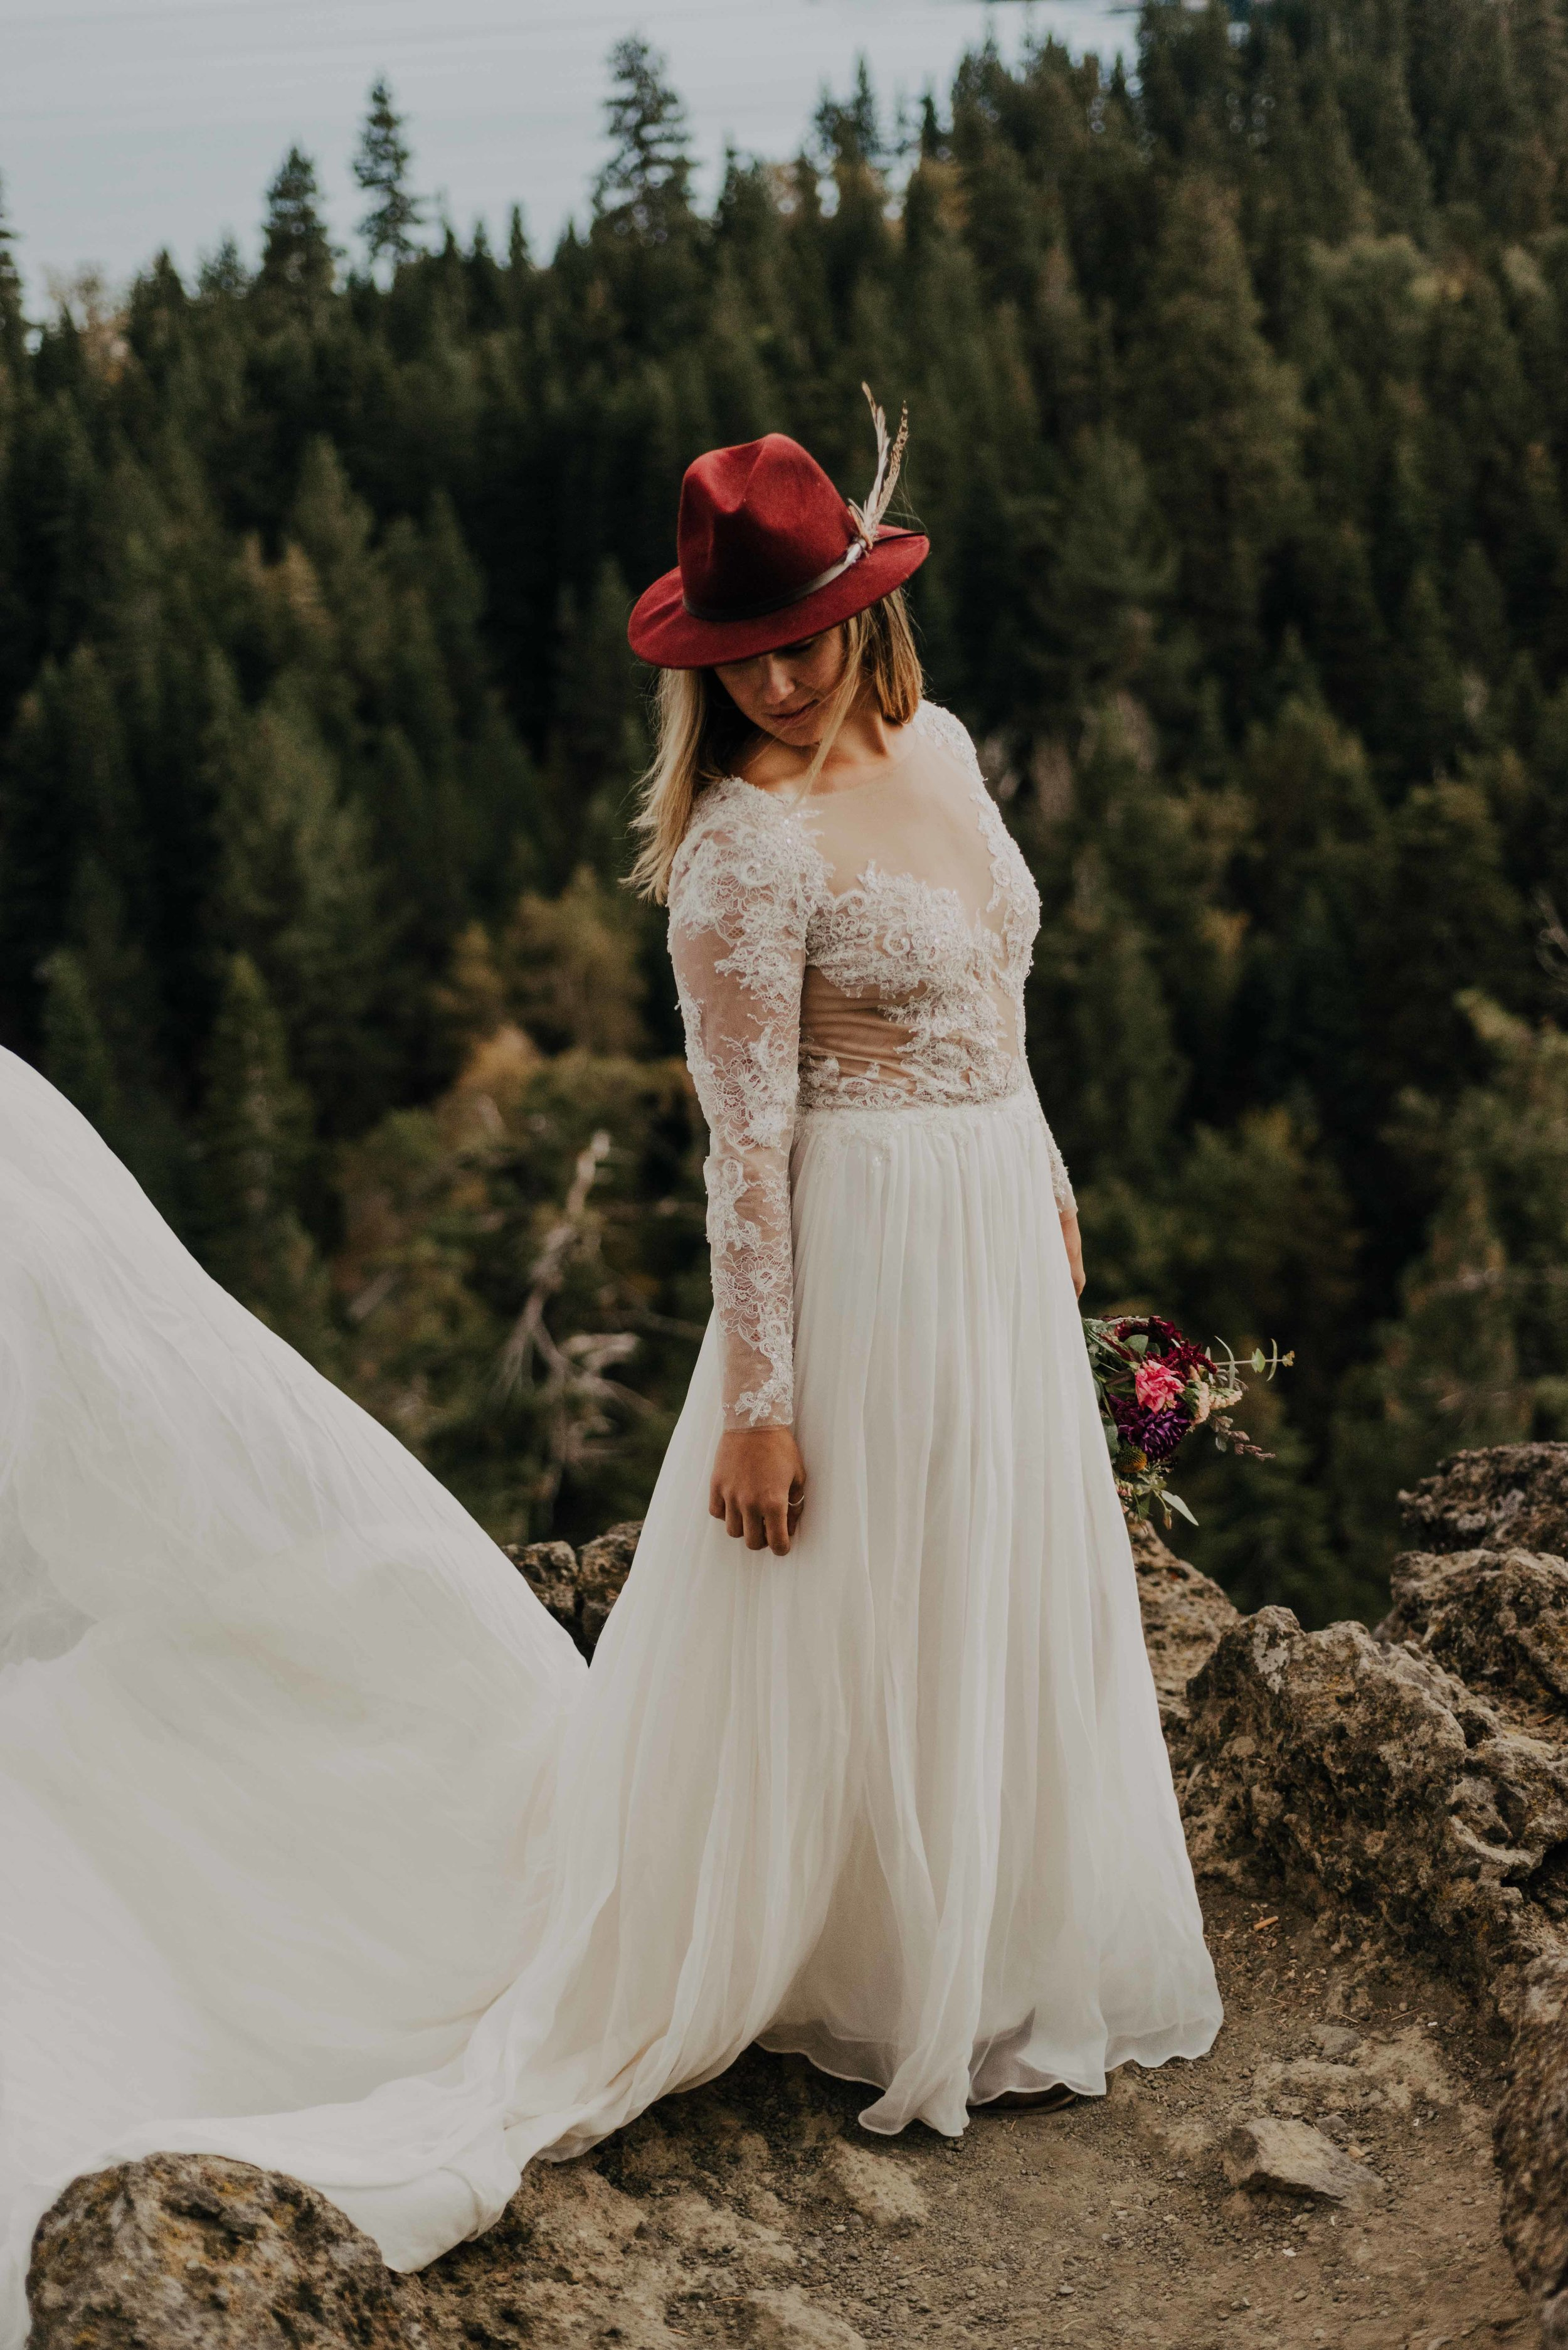 Phoenix Arizona Wedding Dress Rental